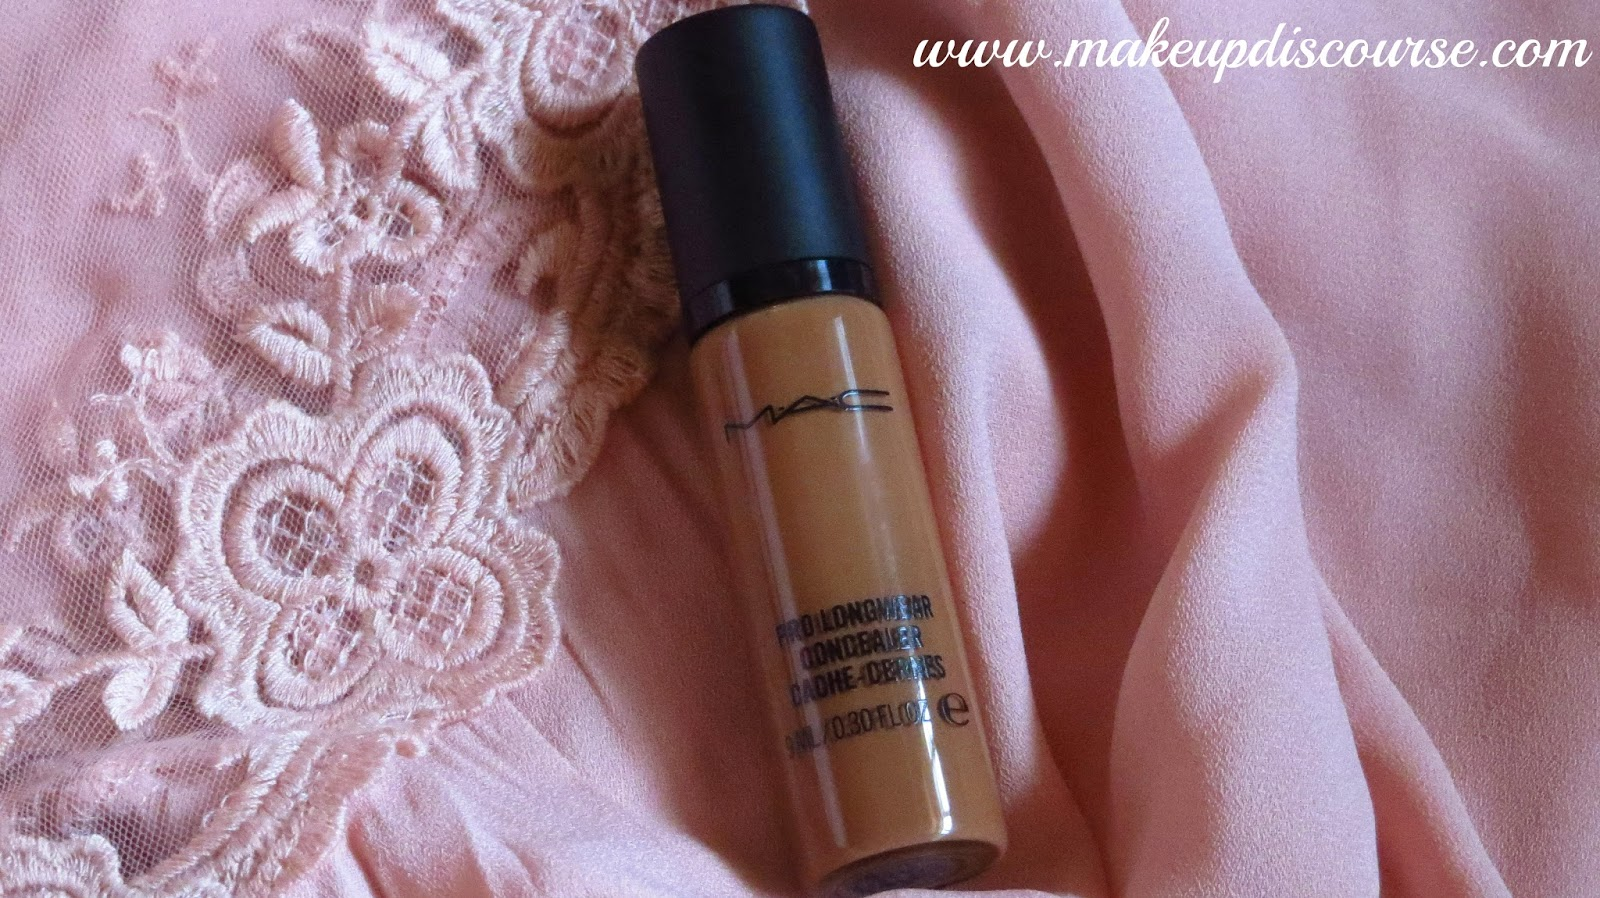 MAC Pro Longwear Concealer Price in India